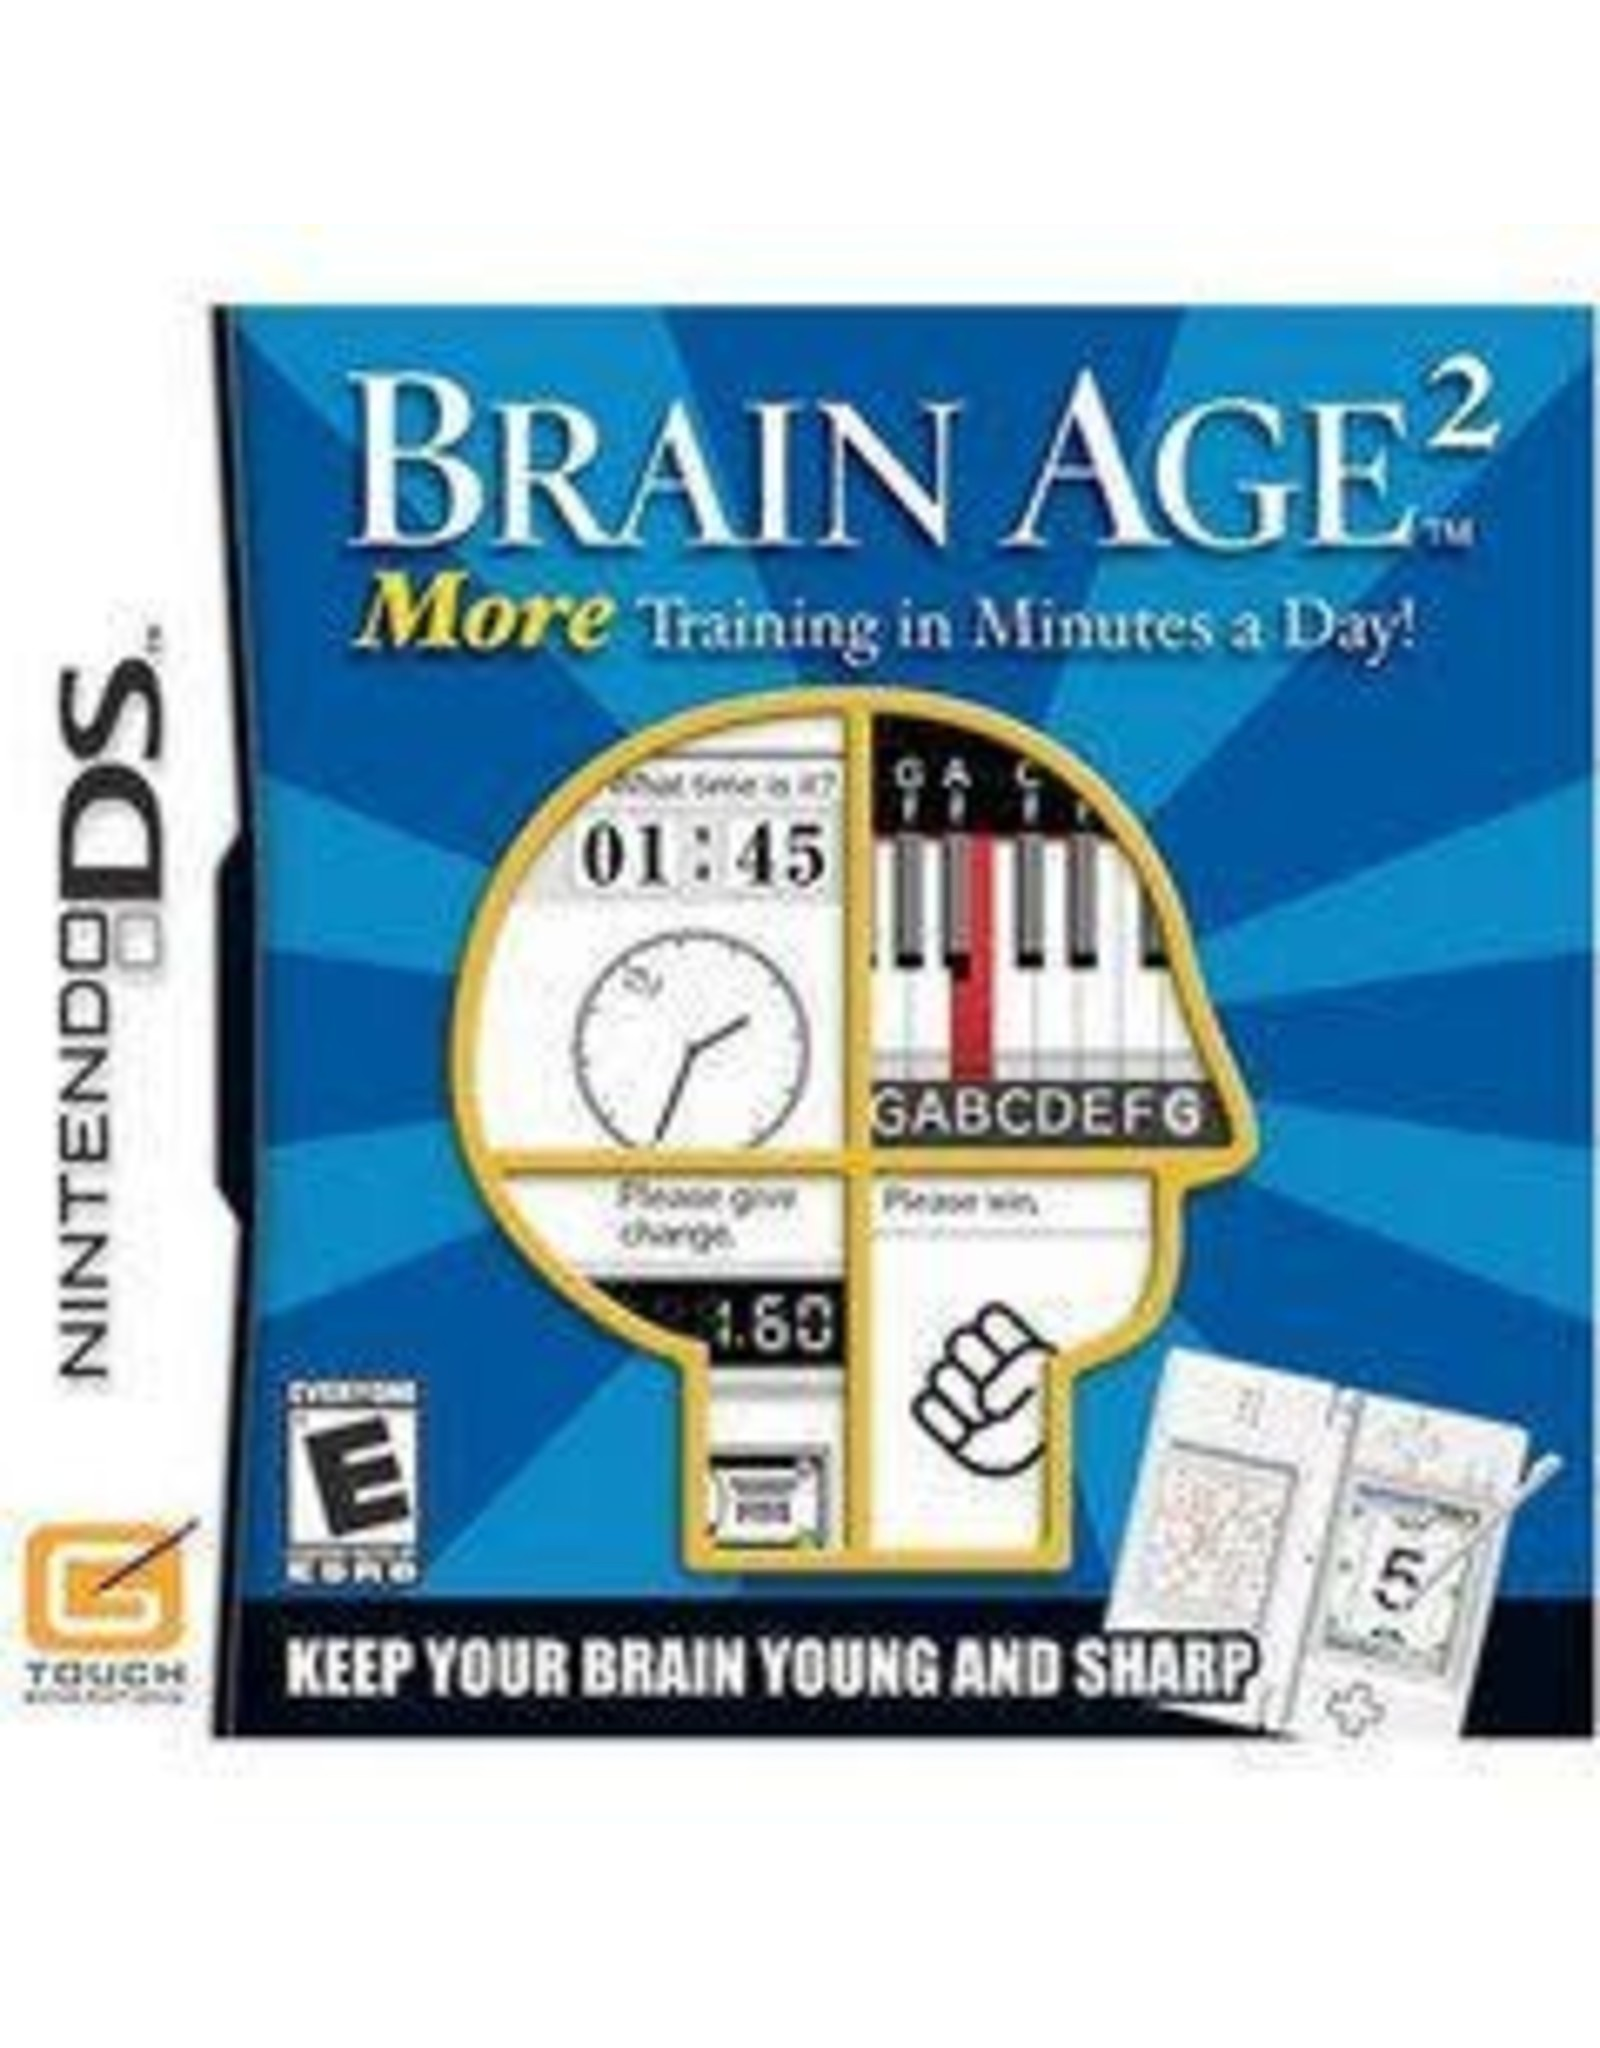 Nintendo DS Brain Age 2 (Cart Only)